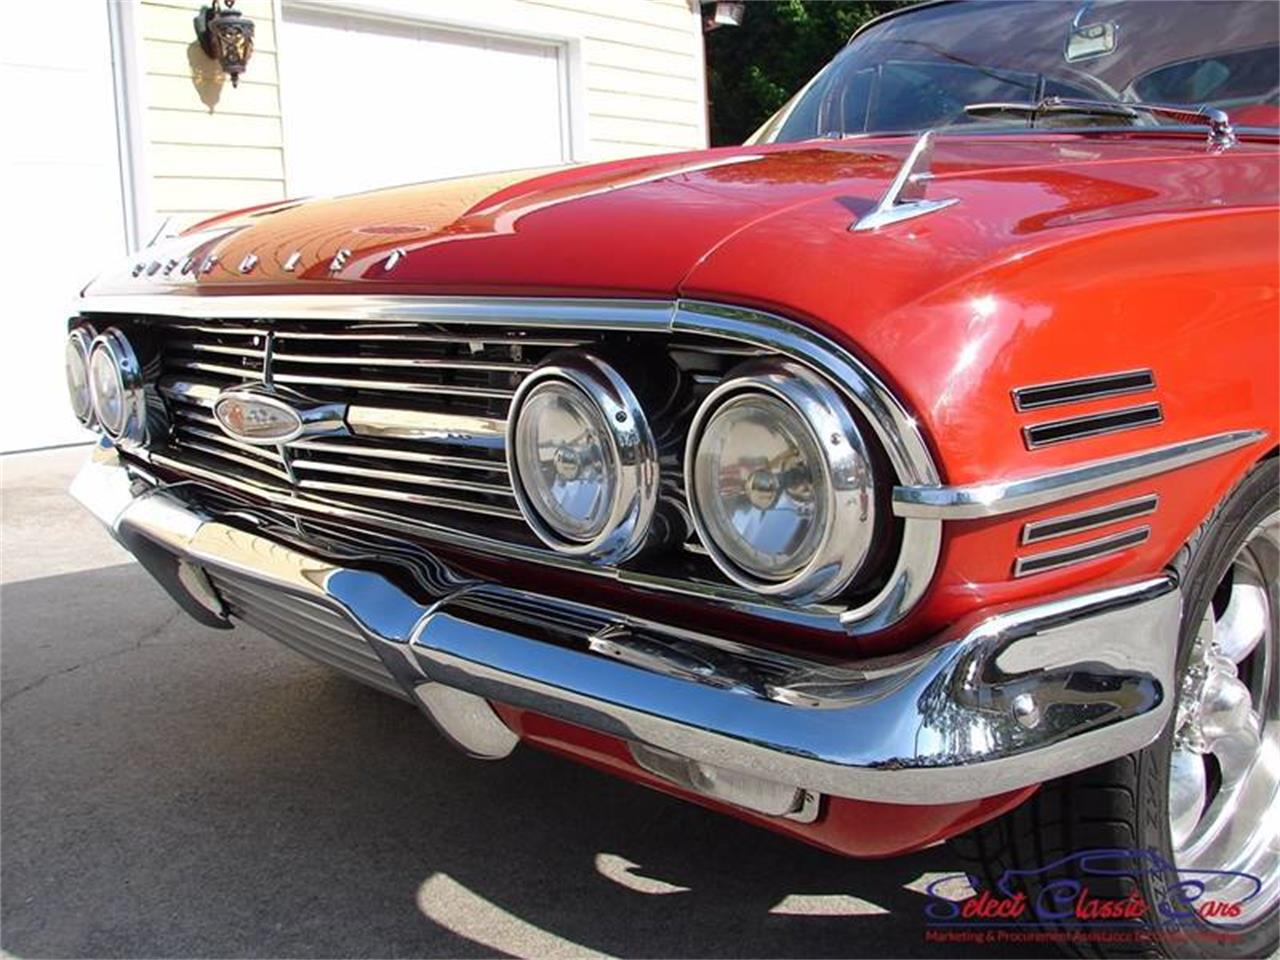 Large Picture of Classic 1960 Chevrolet Impala located in Georgia - $44,500.00 - L613